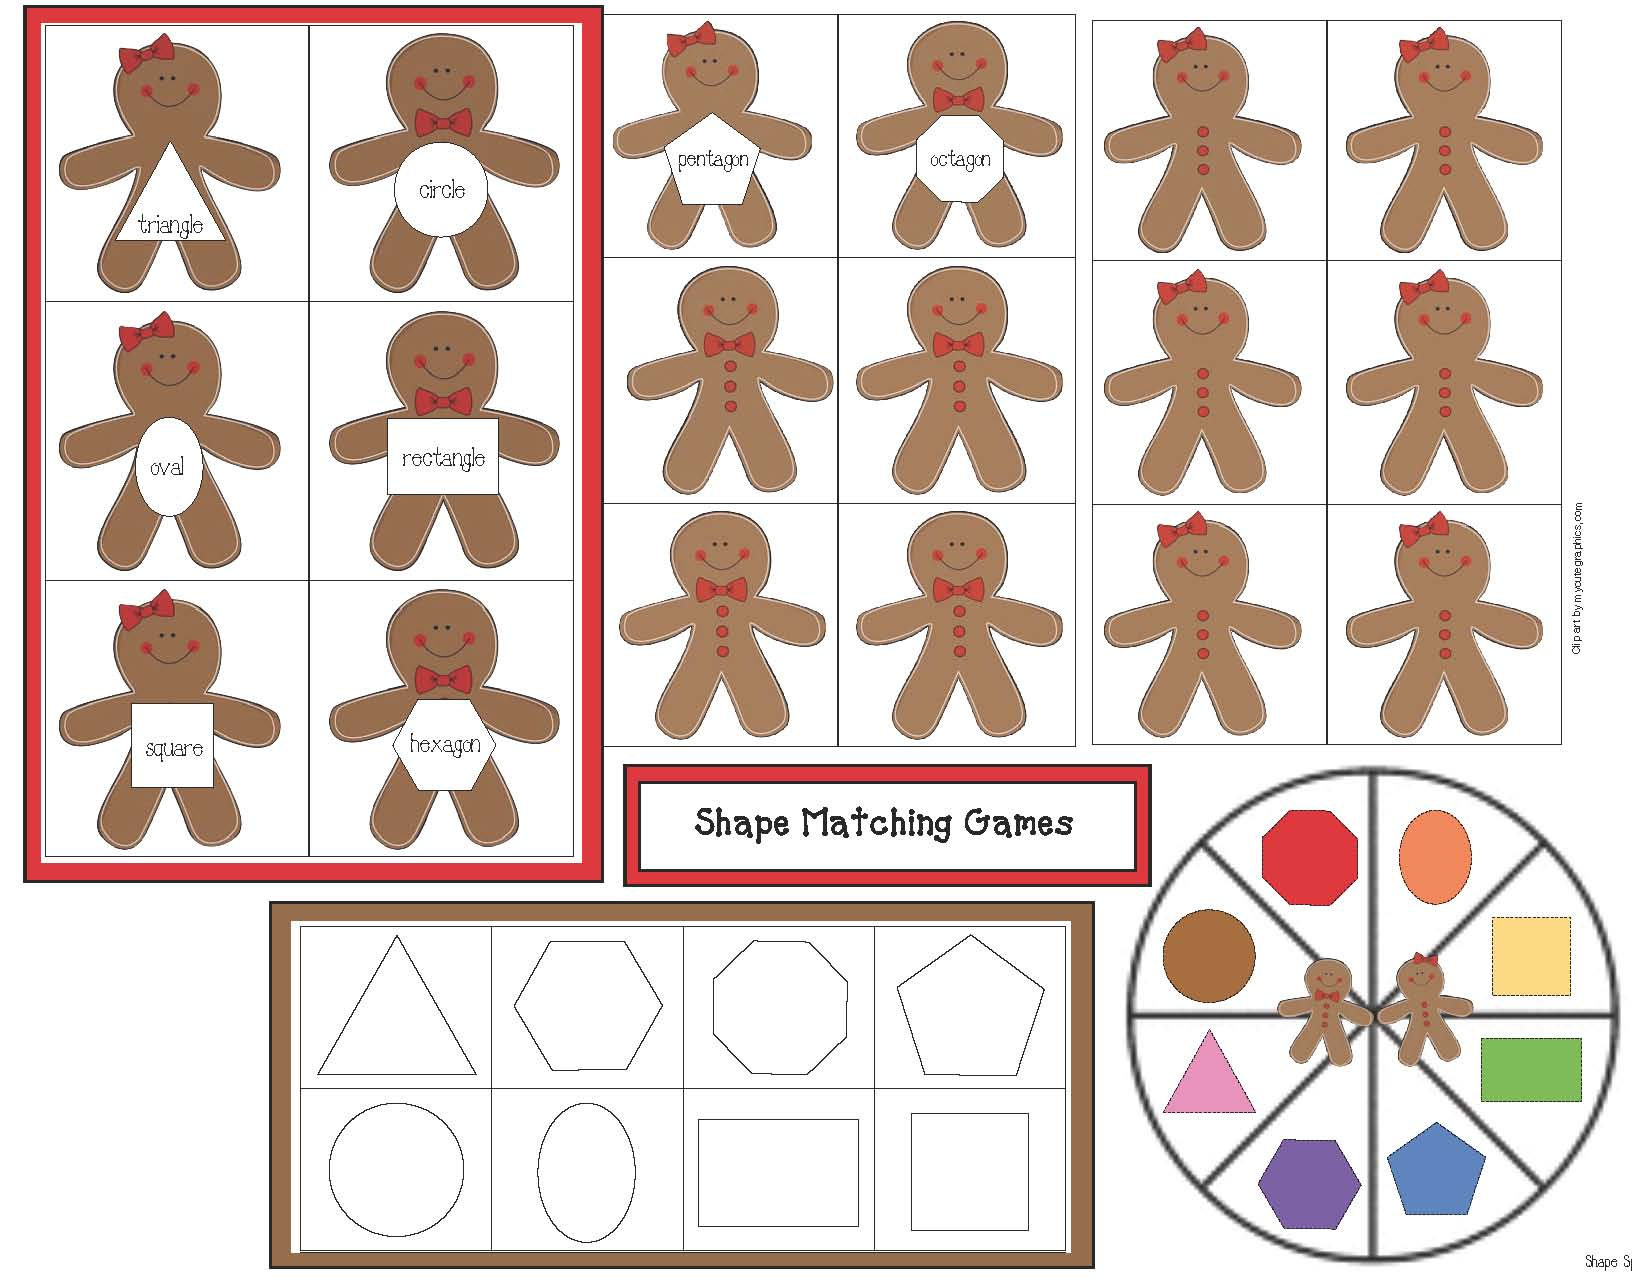 gingerbread activities, gingerbread crafts, gingerbread games, common core gingerbread, gingerbread sliders, alphabet activities, alphabet cards, gingerbread alphabet cards, graphing activities, gingerbread graphs, gingerbread glyph, glyphs, free glyphs, skip counting activities, skip counting by 2's 3's 5's 10's, counting backwards activities, shape activities, shape games, alphabet games, alphabet assessments, digital and analog time activities, gingerbread time activities,